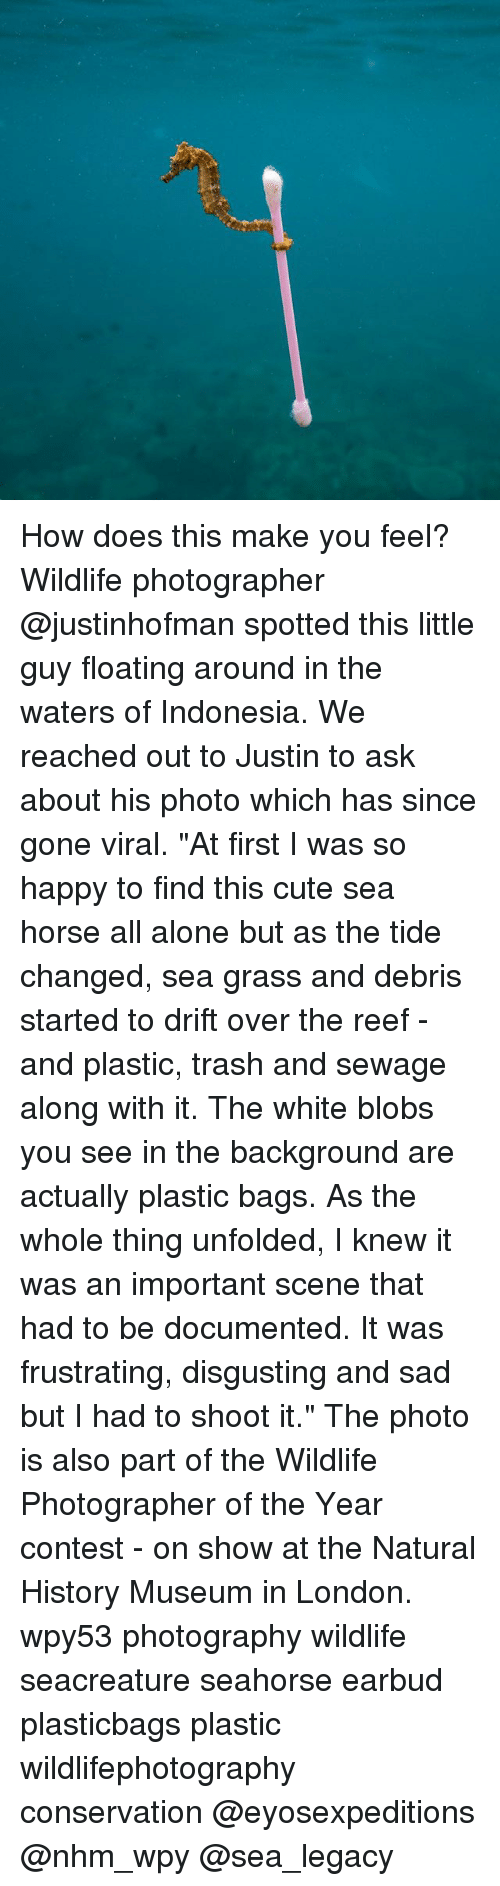 """Being Alone, Cute, and Memes: How does this make you feel? Wildlife photographer @justinhofman spotted this little guy floating around in the waters of Indonesia. We reached out to Justin to ask about his photo which has since gone viral. """"At first I was so happy to find this cute sea horse all alone but as the tide changed, sea grass and debris started to drift over the reef - and plastic, trash and sewage along with it. The white blobs you see in the background are actually plastic bags. As the whole thing unfolded, I knew it was an important scene that had to be documented. It was frustrating, disgusting and sad but I had to shoot it."""" The photo is also part of the Wildlife Photographer of the Year contest - on show at the Natural History Museum in London. wpy53 photography wildlife seacreature seahorse earbud plasticbags plastic wildlifephotography conservation @eyosexpeditions @nhm_wpy @sea_legacy"""